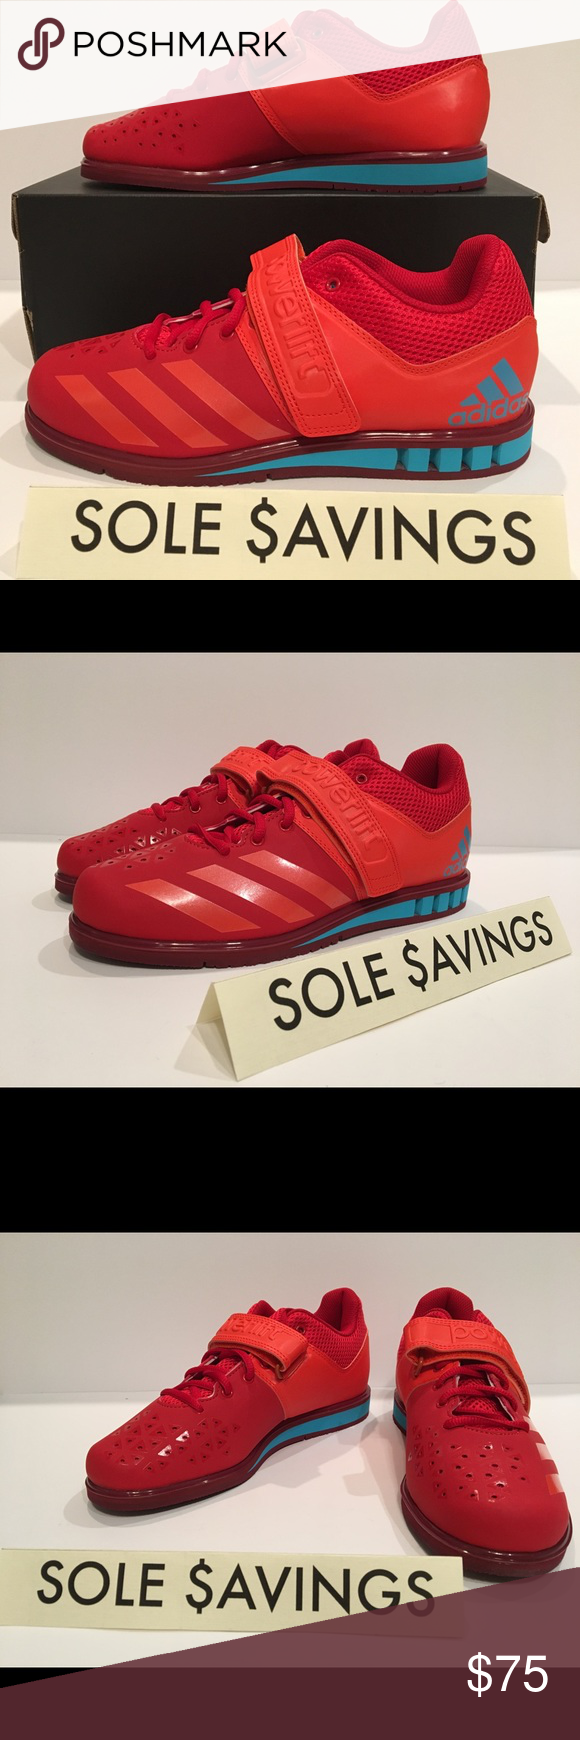 hot sales d23a8 48099 Adidas Powerlift 3.1 Red Blue Weightlifting Shoes (BA8016) Adidas Powerlift  3.1 Red Blue Weightlifting Shoes Men s (ALL SIZES) You are looking at a new  pair ...